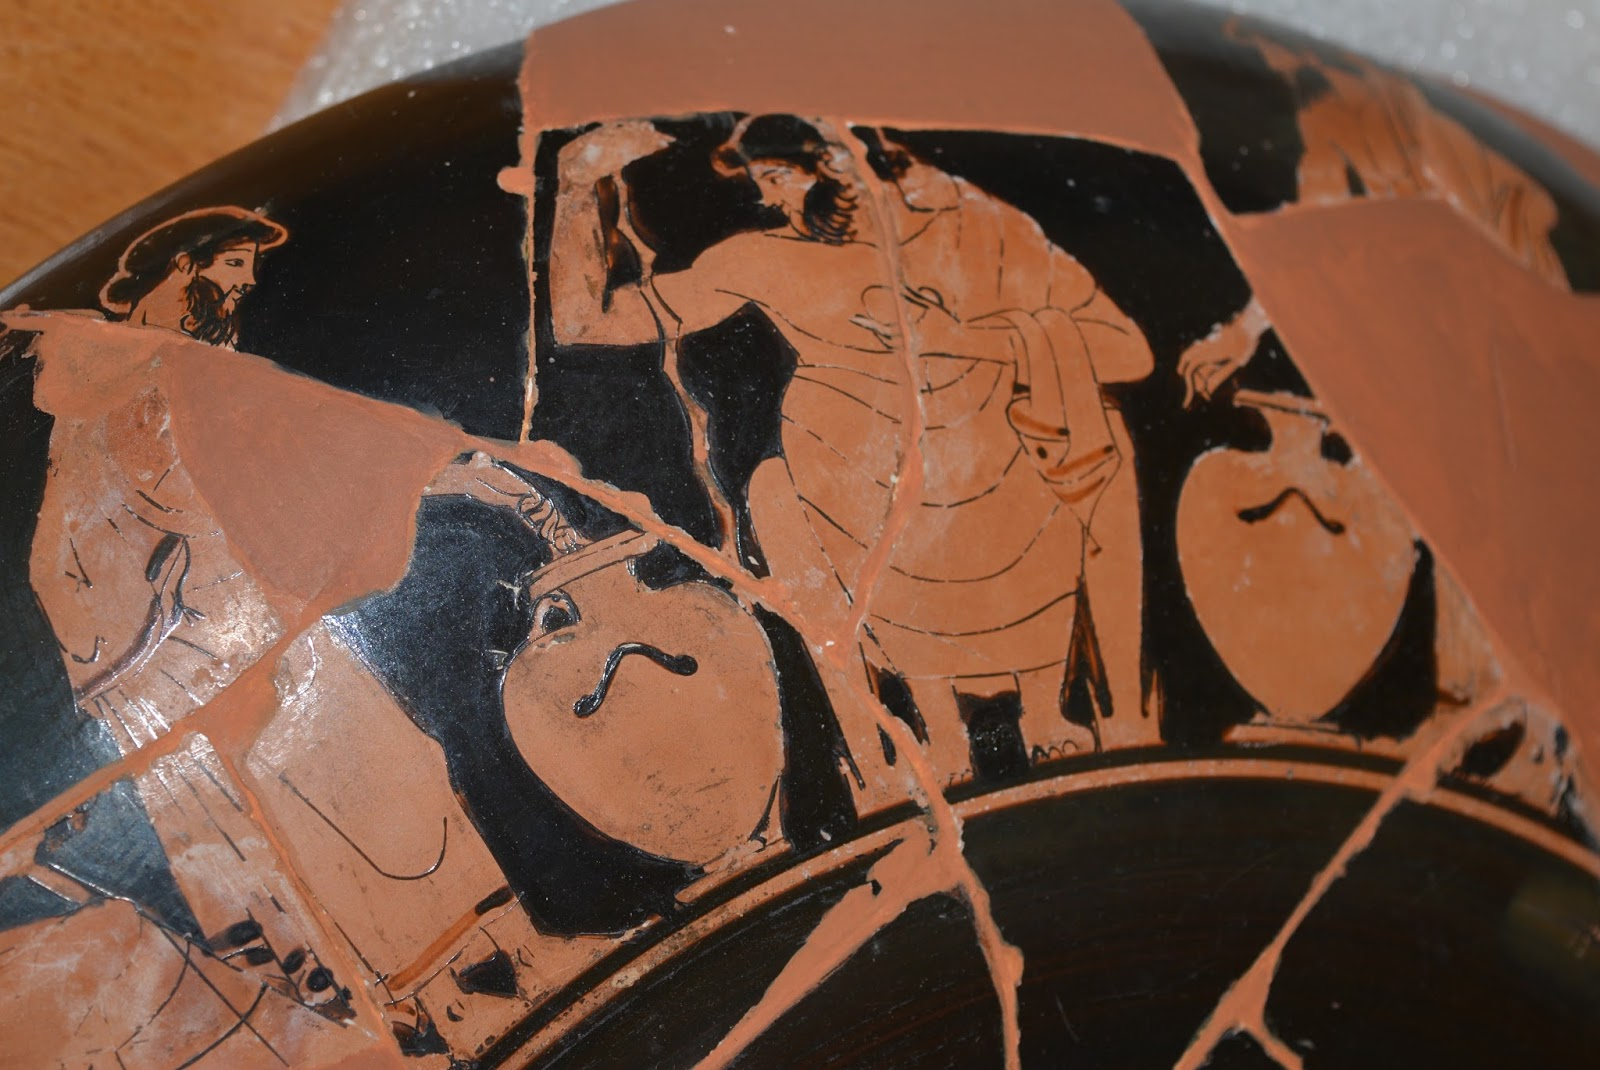 Panoply vase animation project blog above athenians cast their votes on a cup muse des beaux arts dijon ca 1301 reviewsmspy